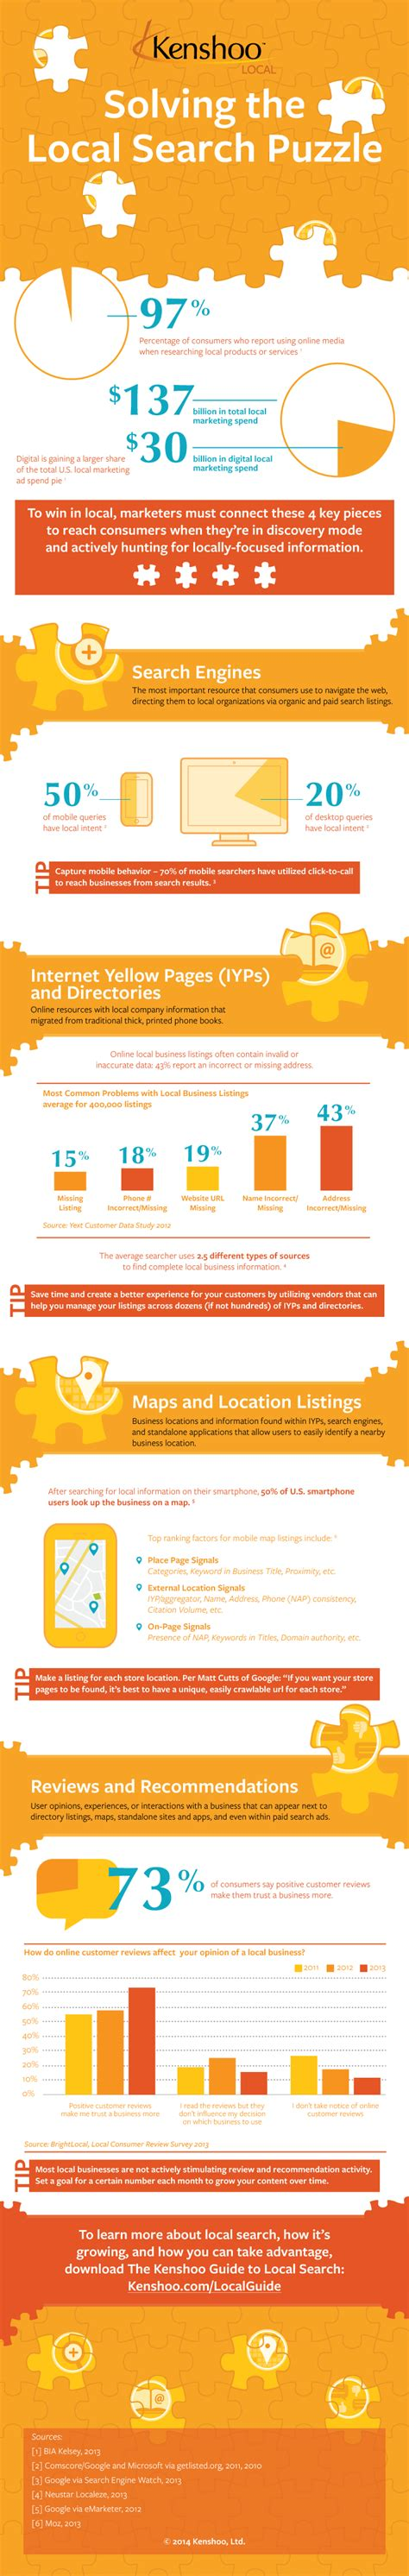 Yp Search Infographic Winning Local Through Search Engines Yellow Pages Maps Reviews